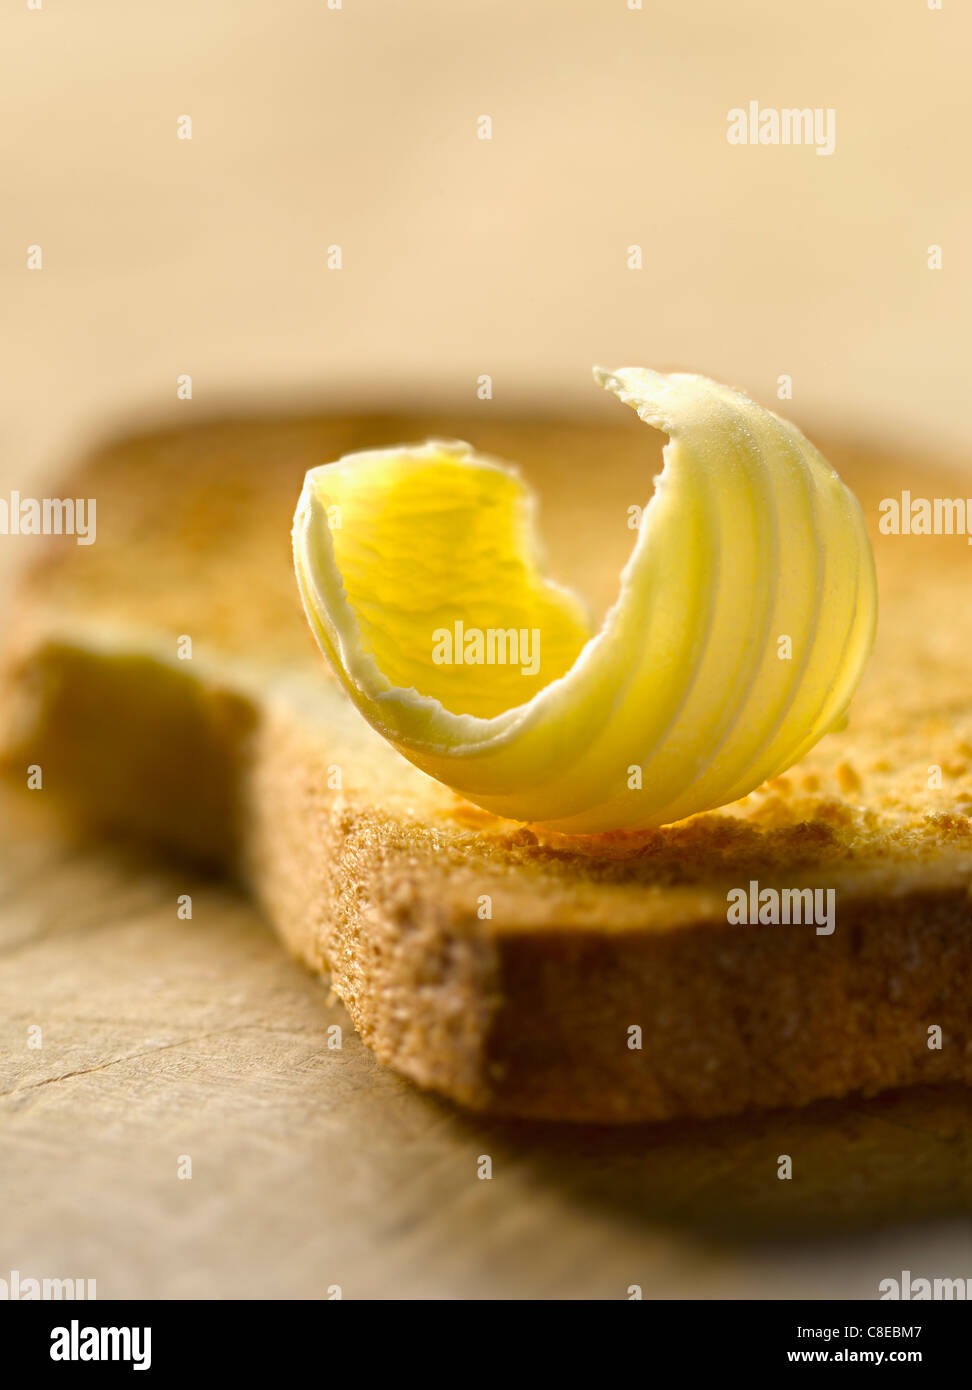 Noisette de beurre sur une biscotte Photo Stock